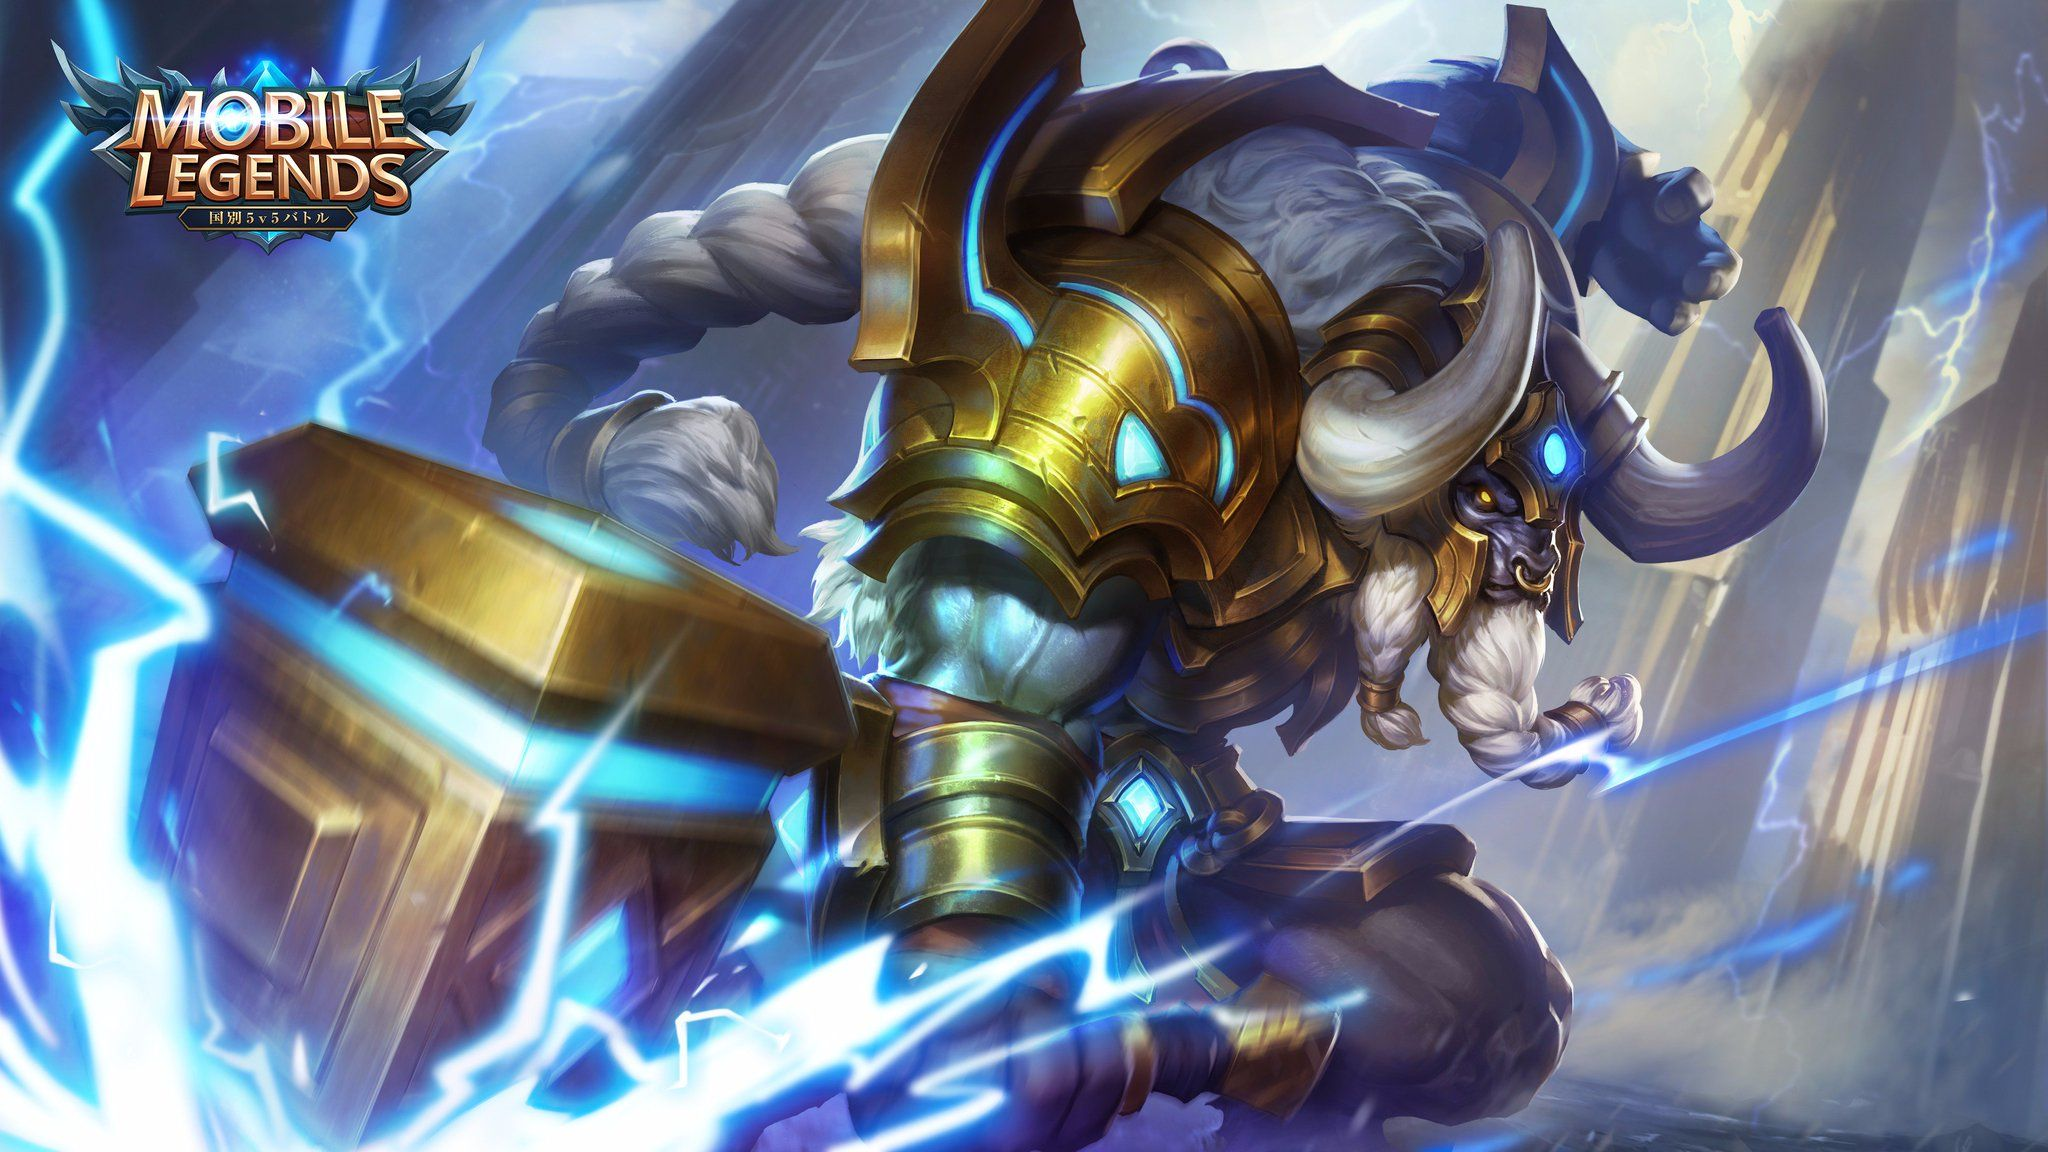 wallpaper-mobile-legends-minotaur-taurus